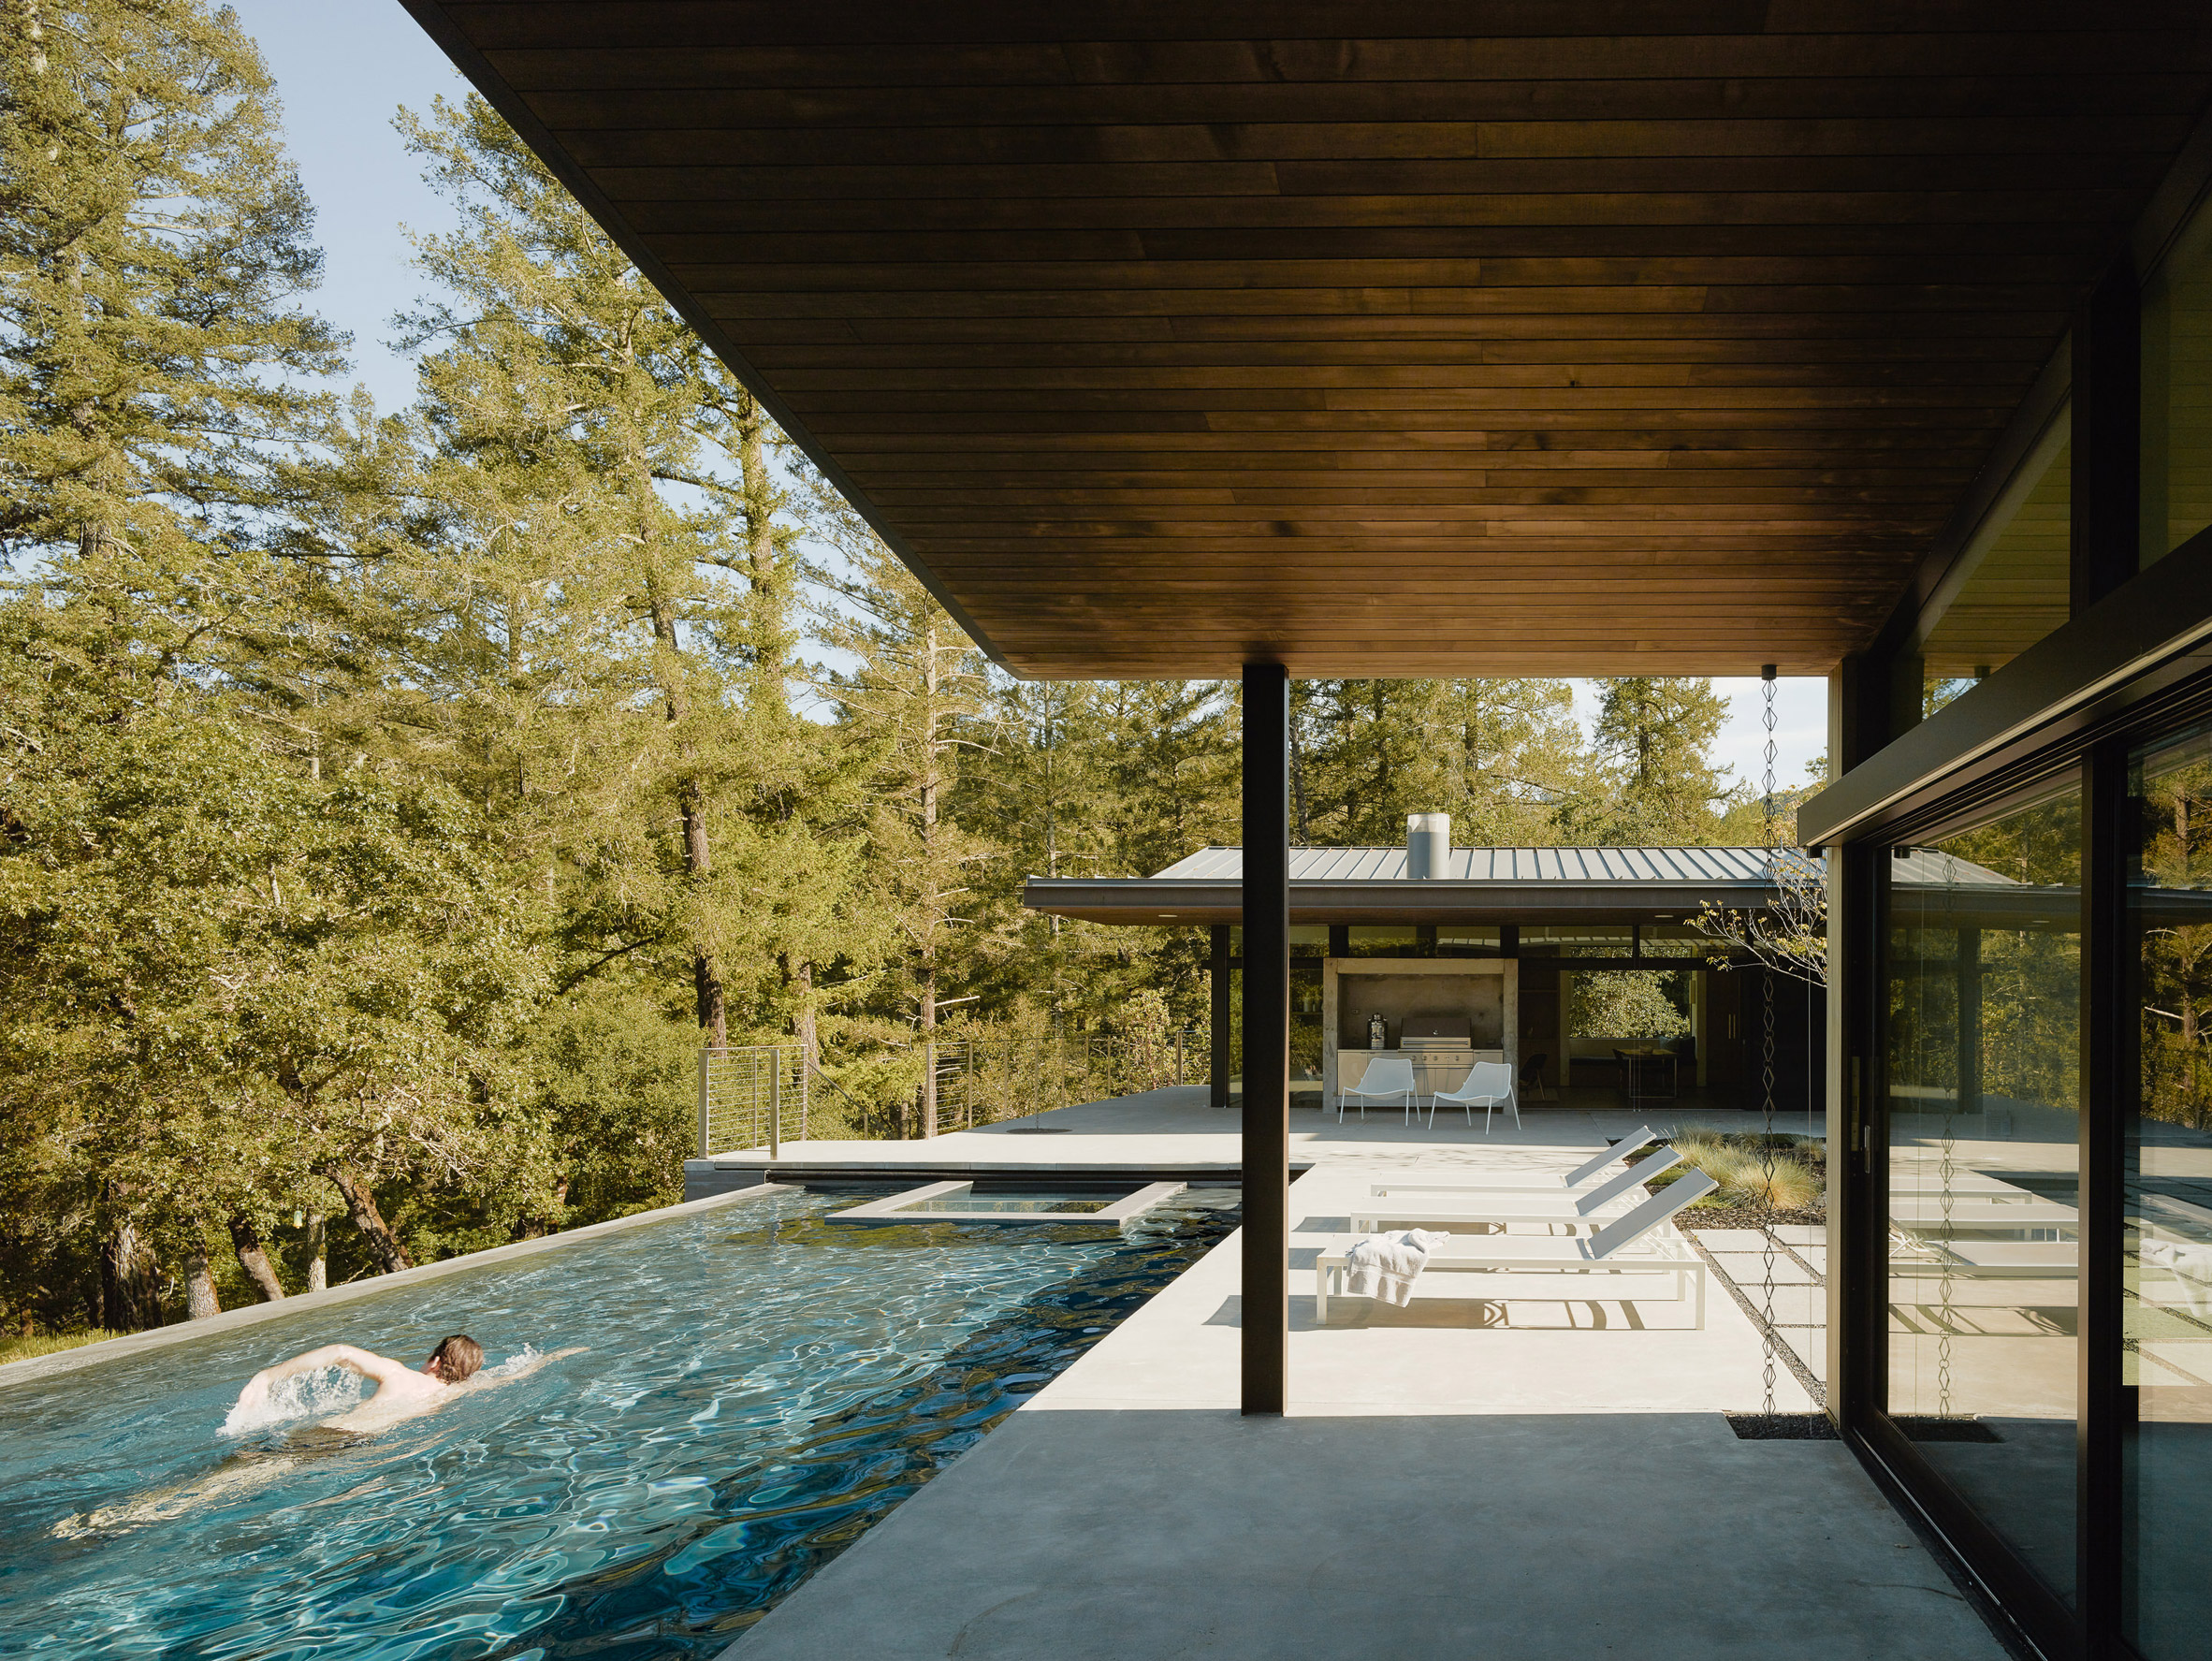 Gorgeous modern home masterfully retreats into nature